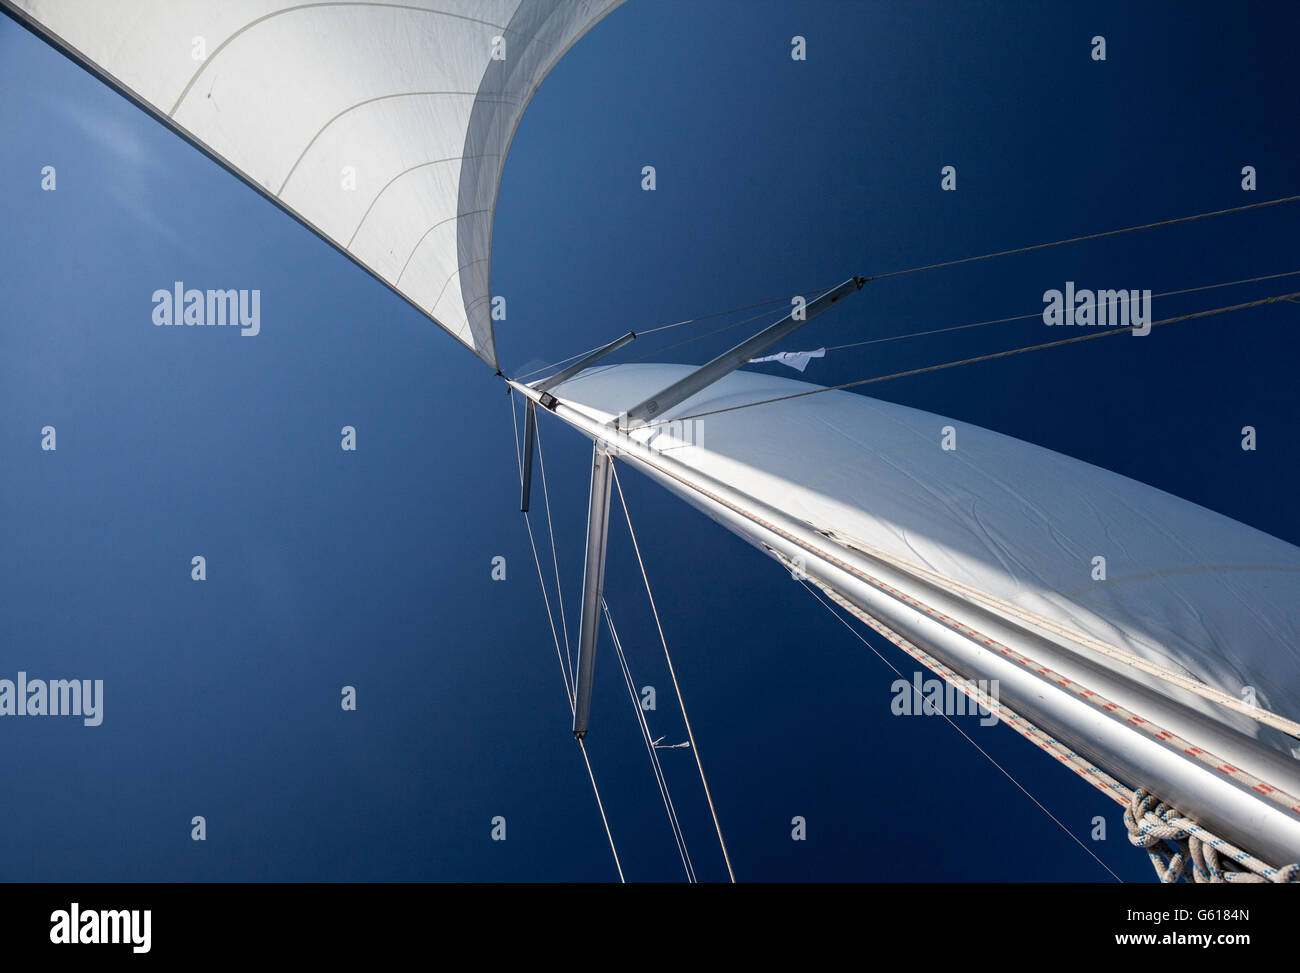 a yacht sail in the blue sky - Stock Image